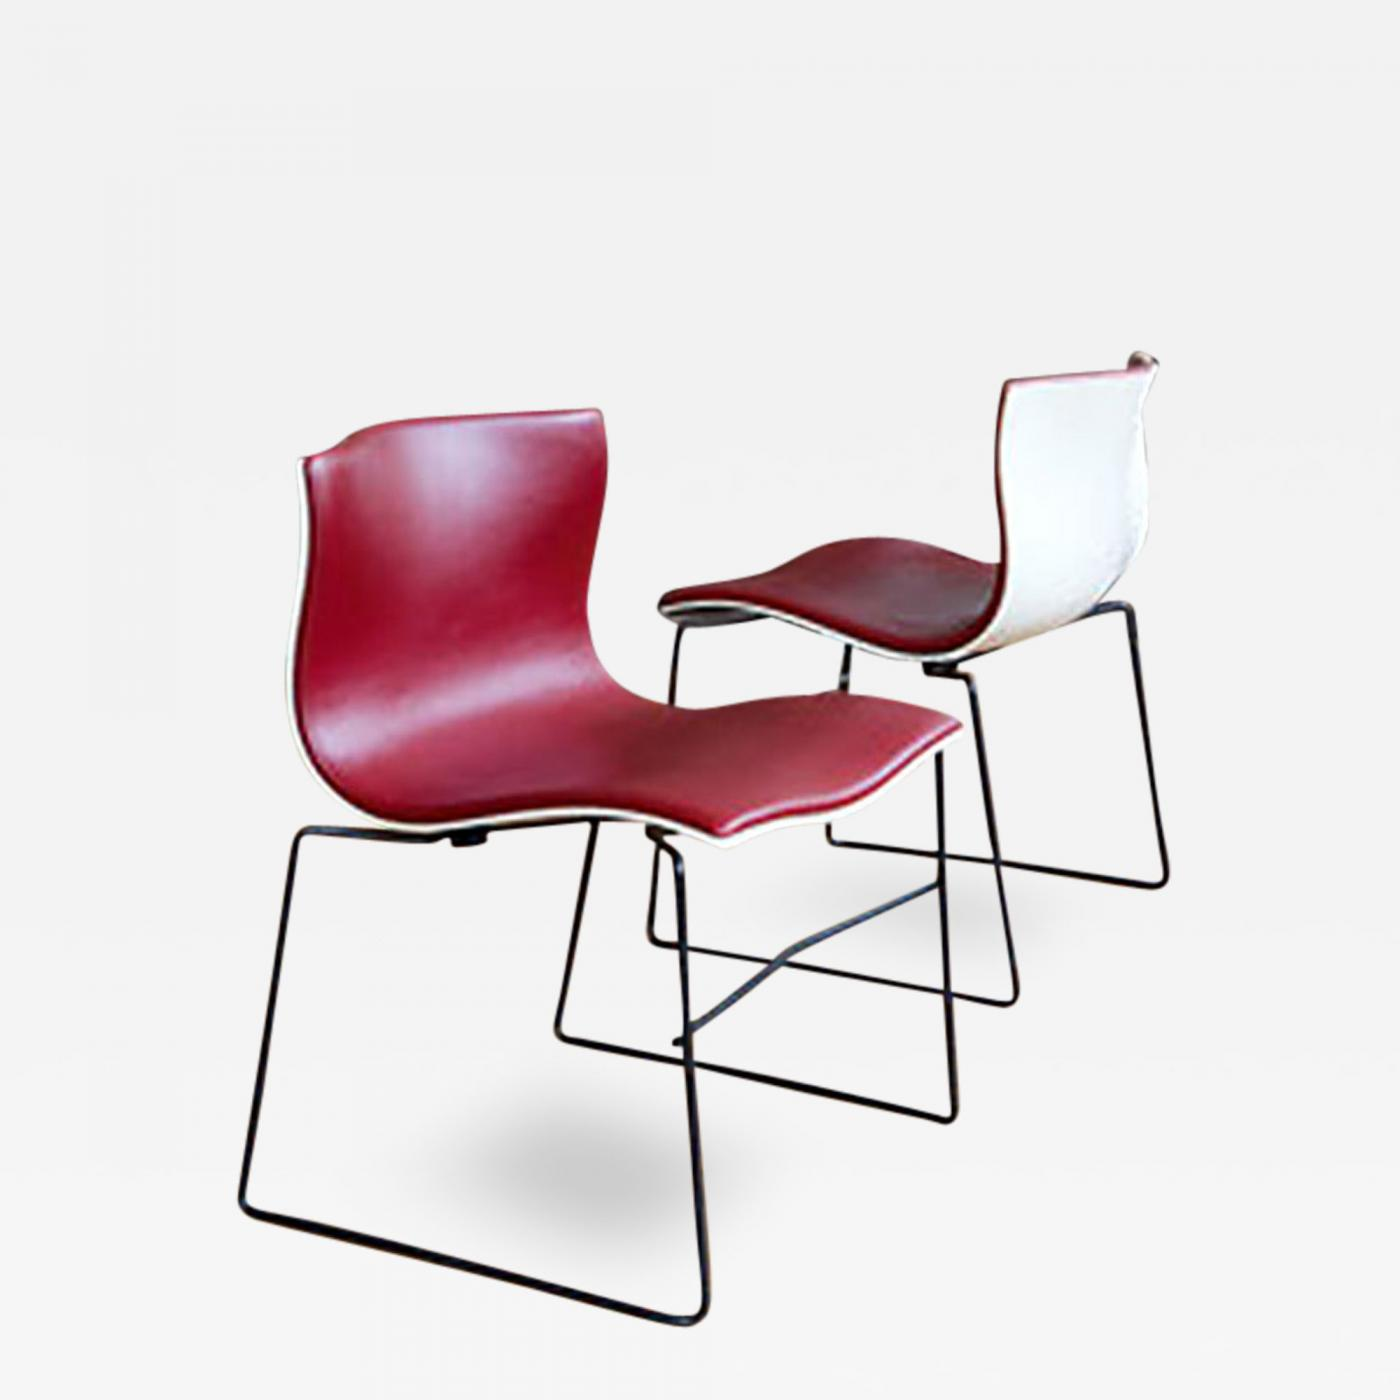 Listings / Furniture / Seating / Side Chairs · Massimo Vignelli Vignelli Handkerchief  Chairs